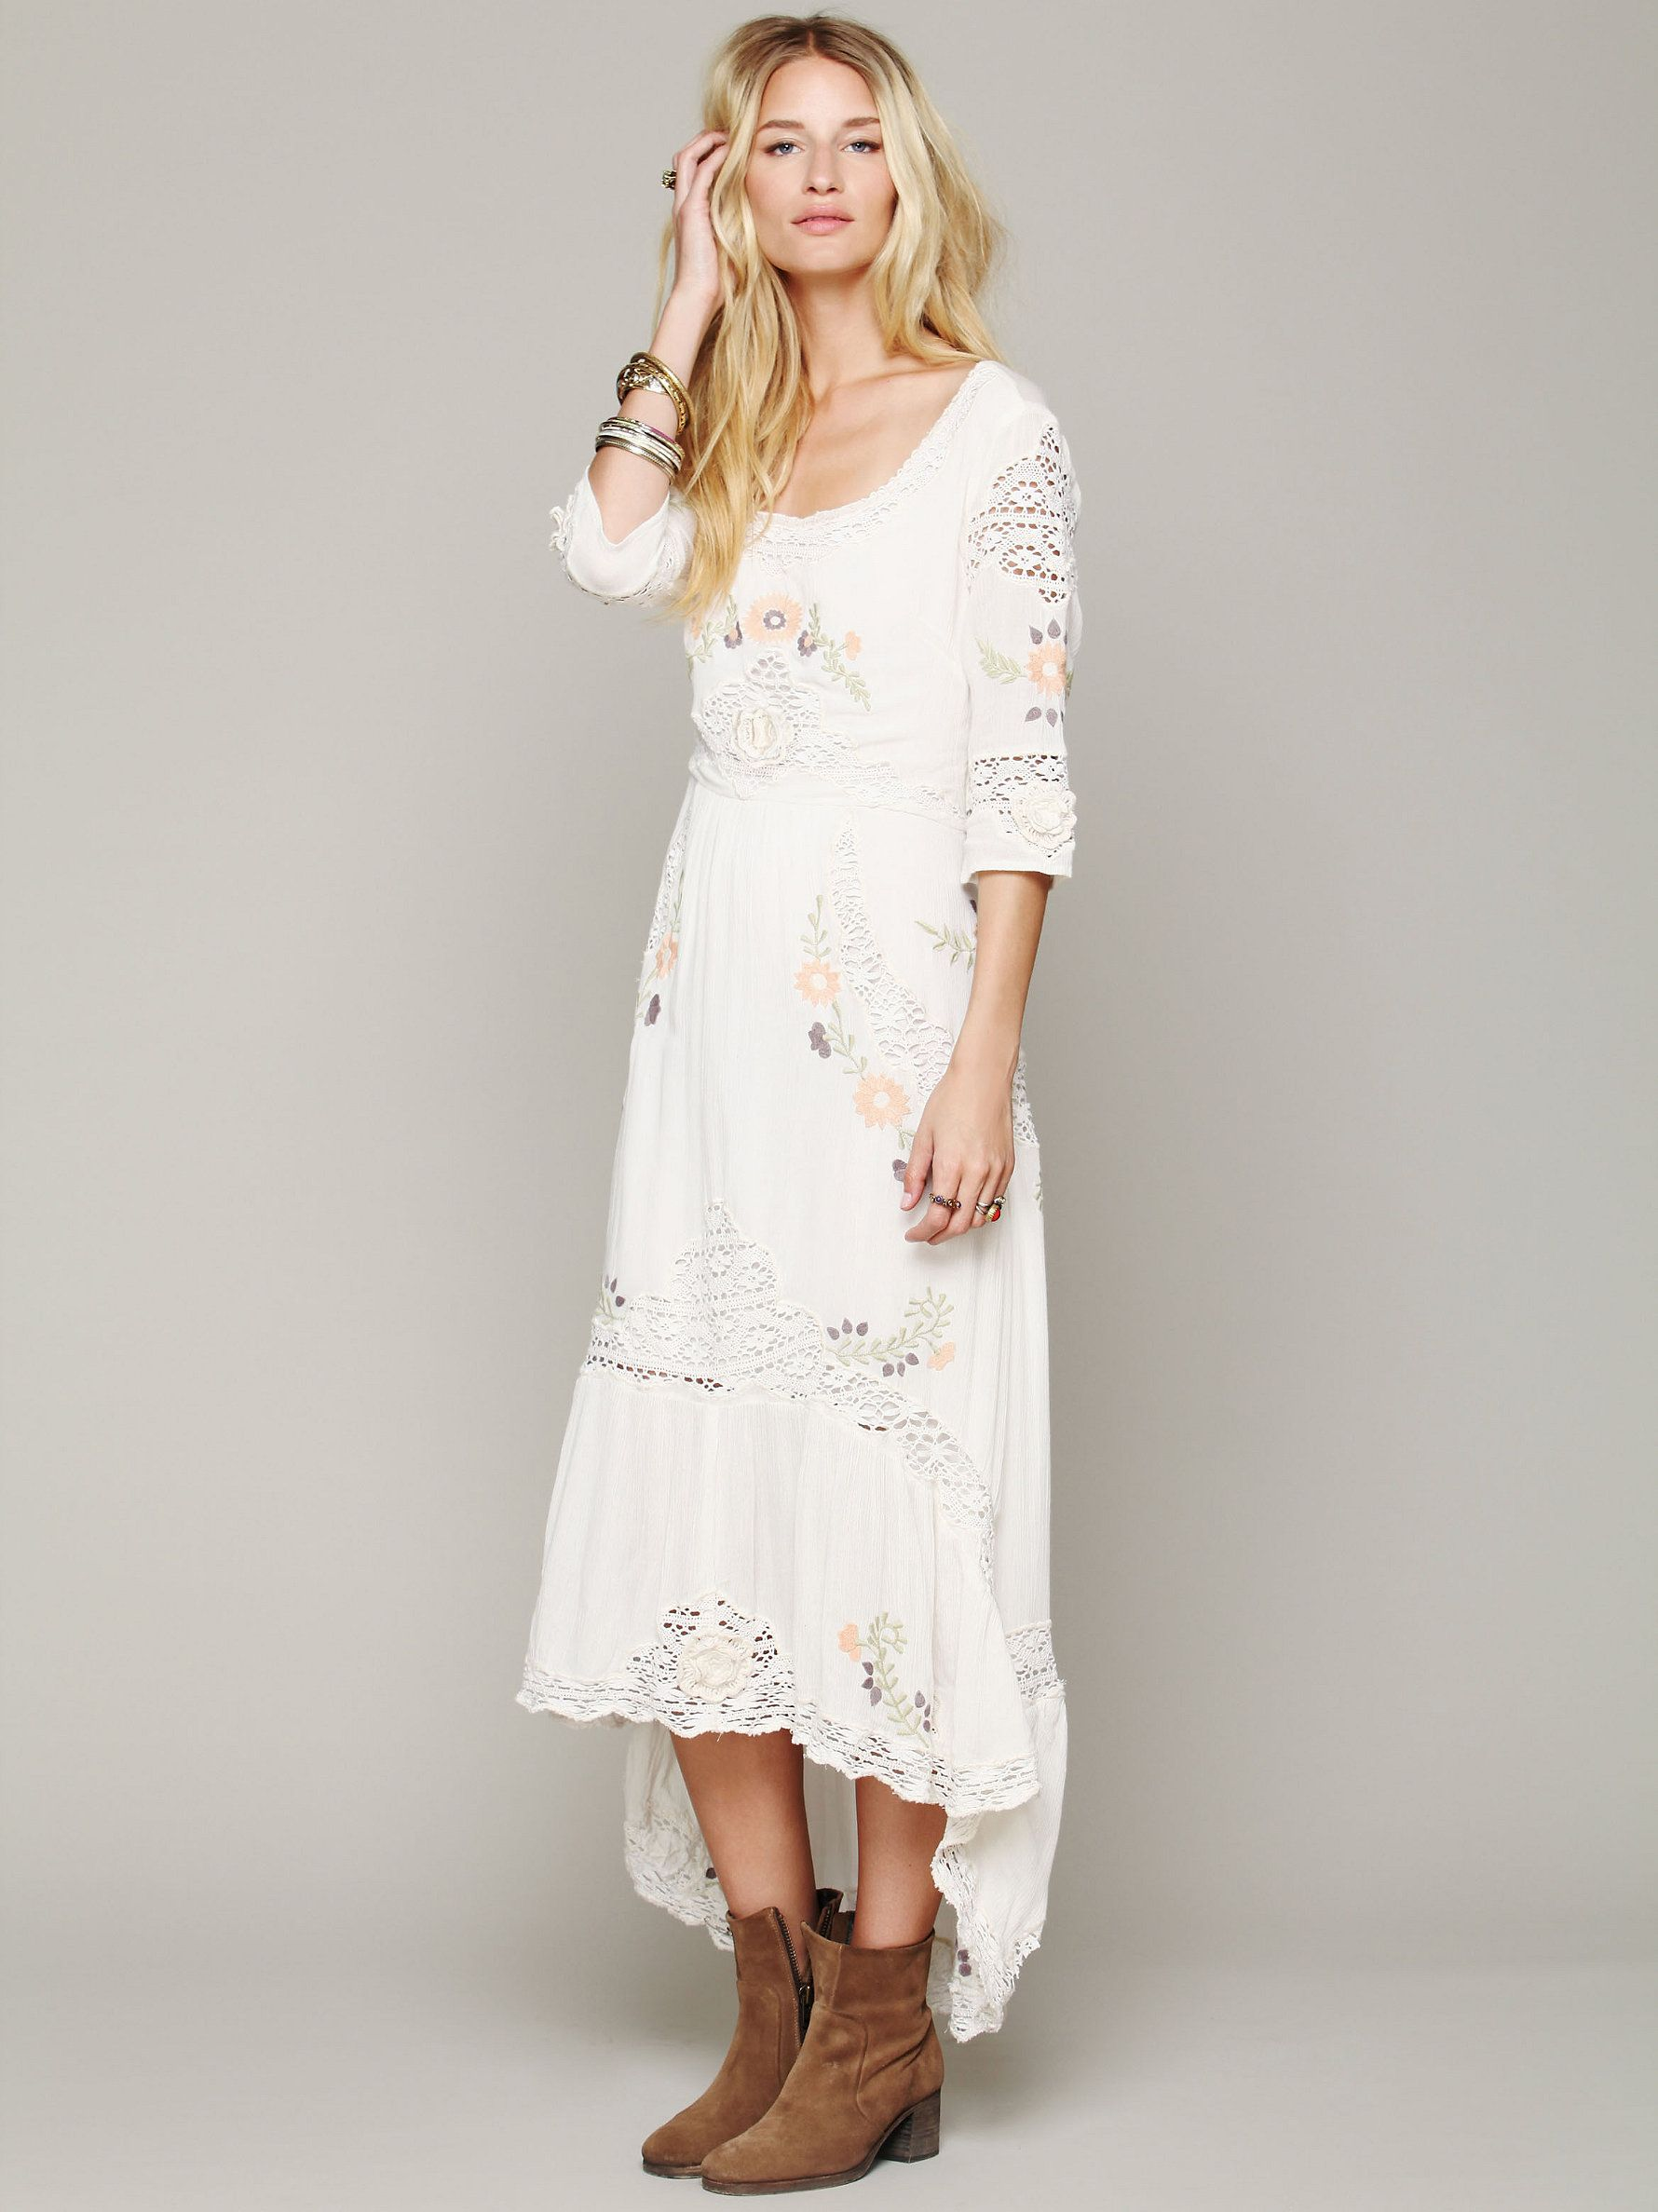 Free people black wedding dress